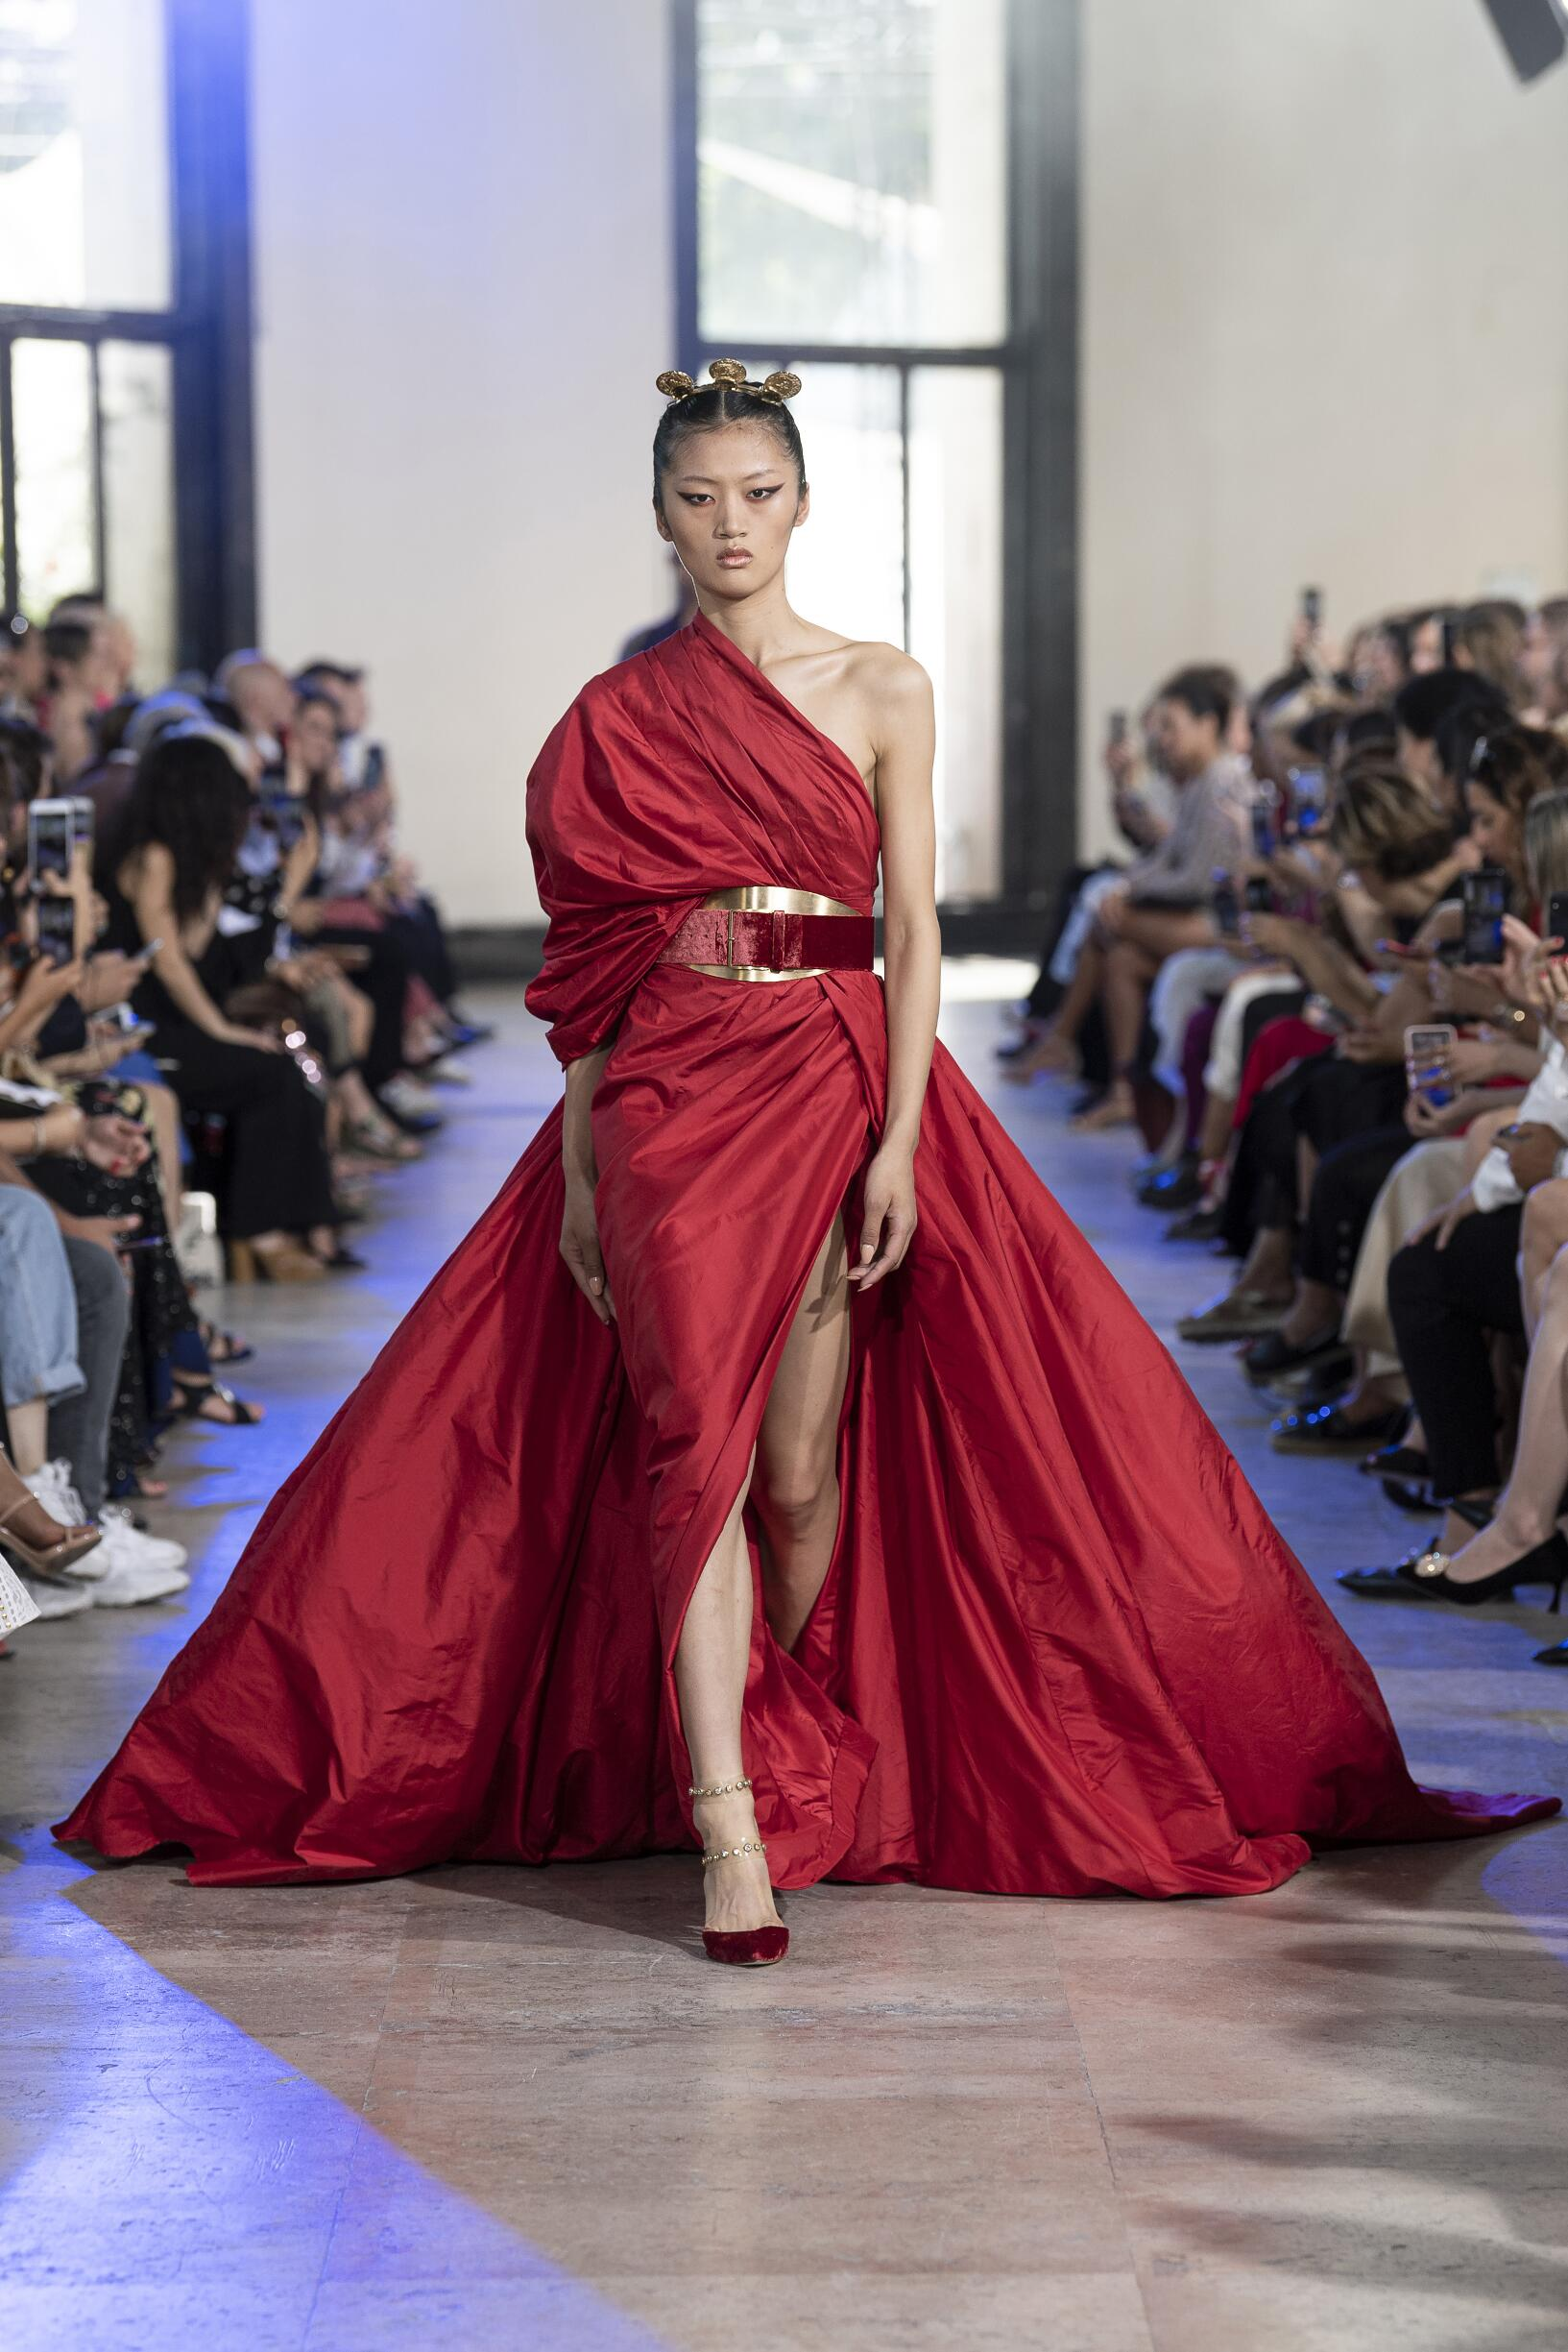 Winter 2019-20 Fashion Trends Elie Saab Haute Couture